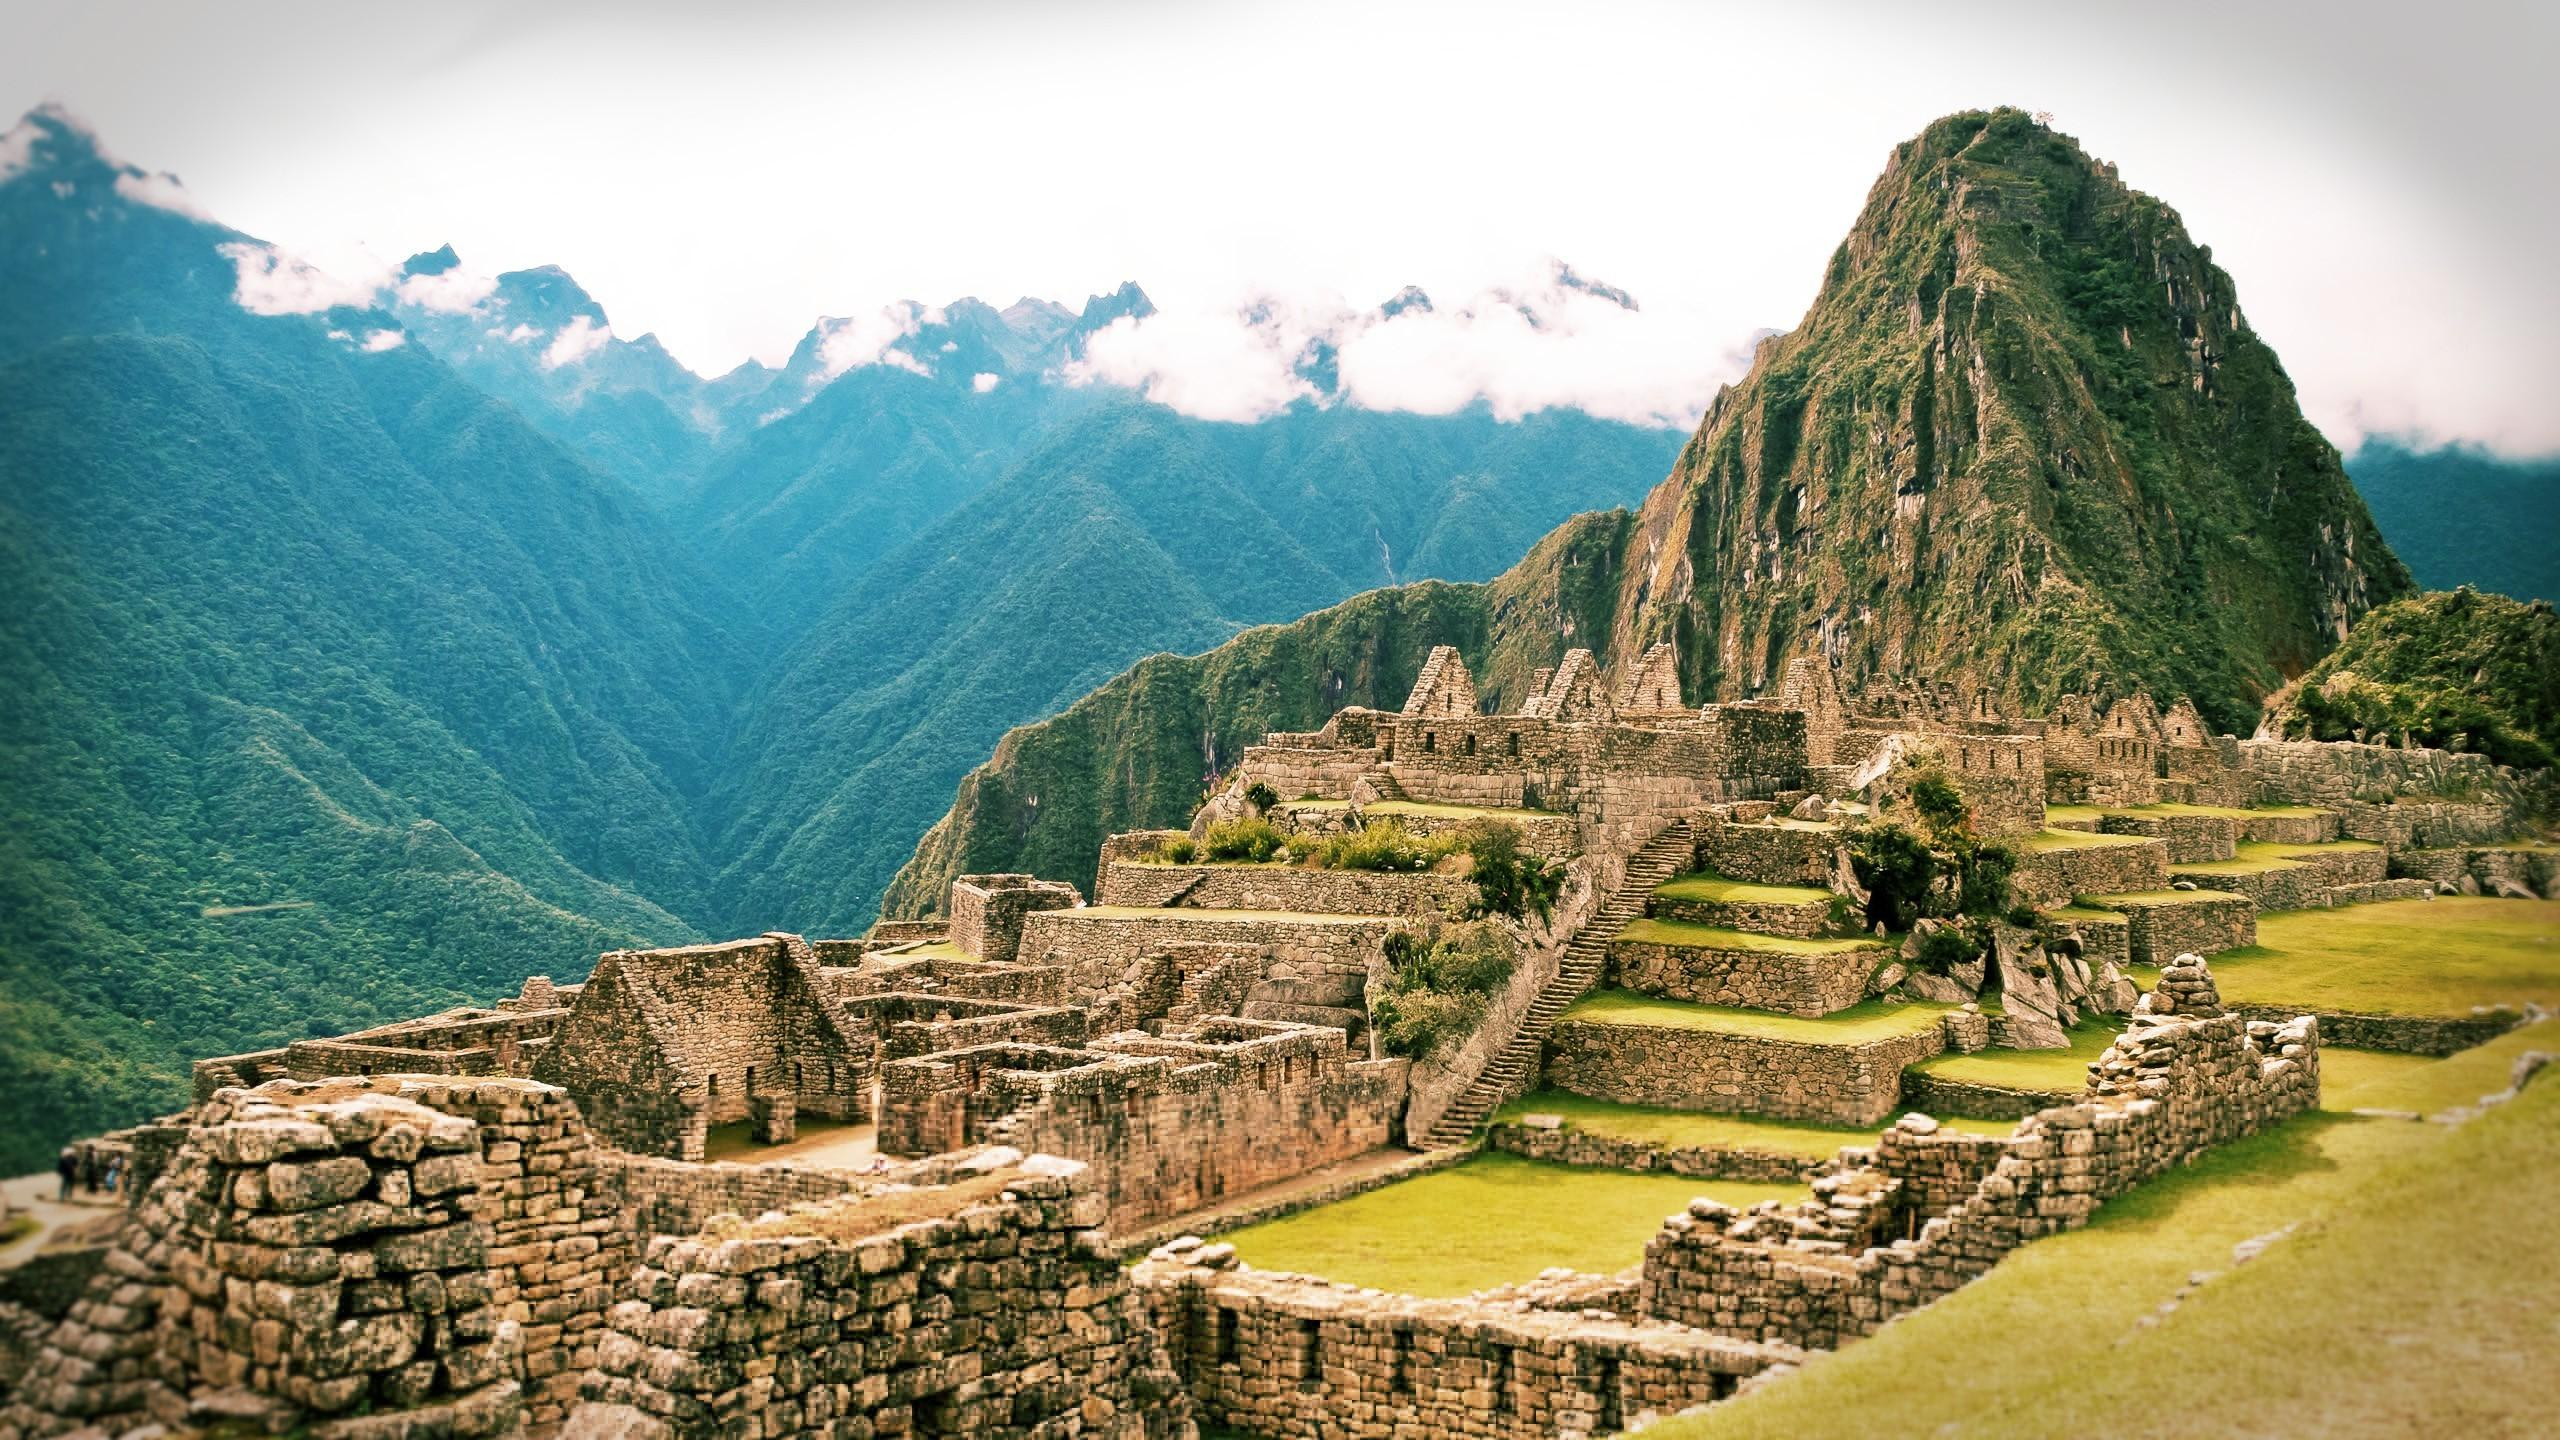 Machu Picchu Wallpapers High Quality | Download Free